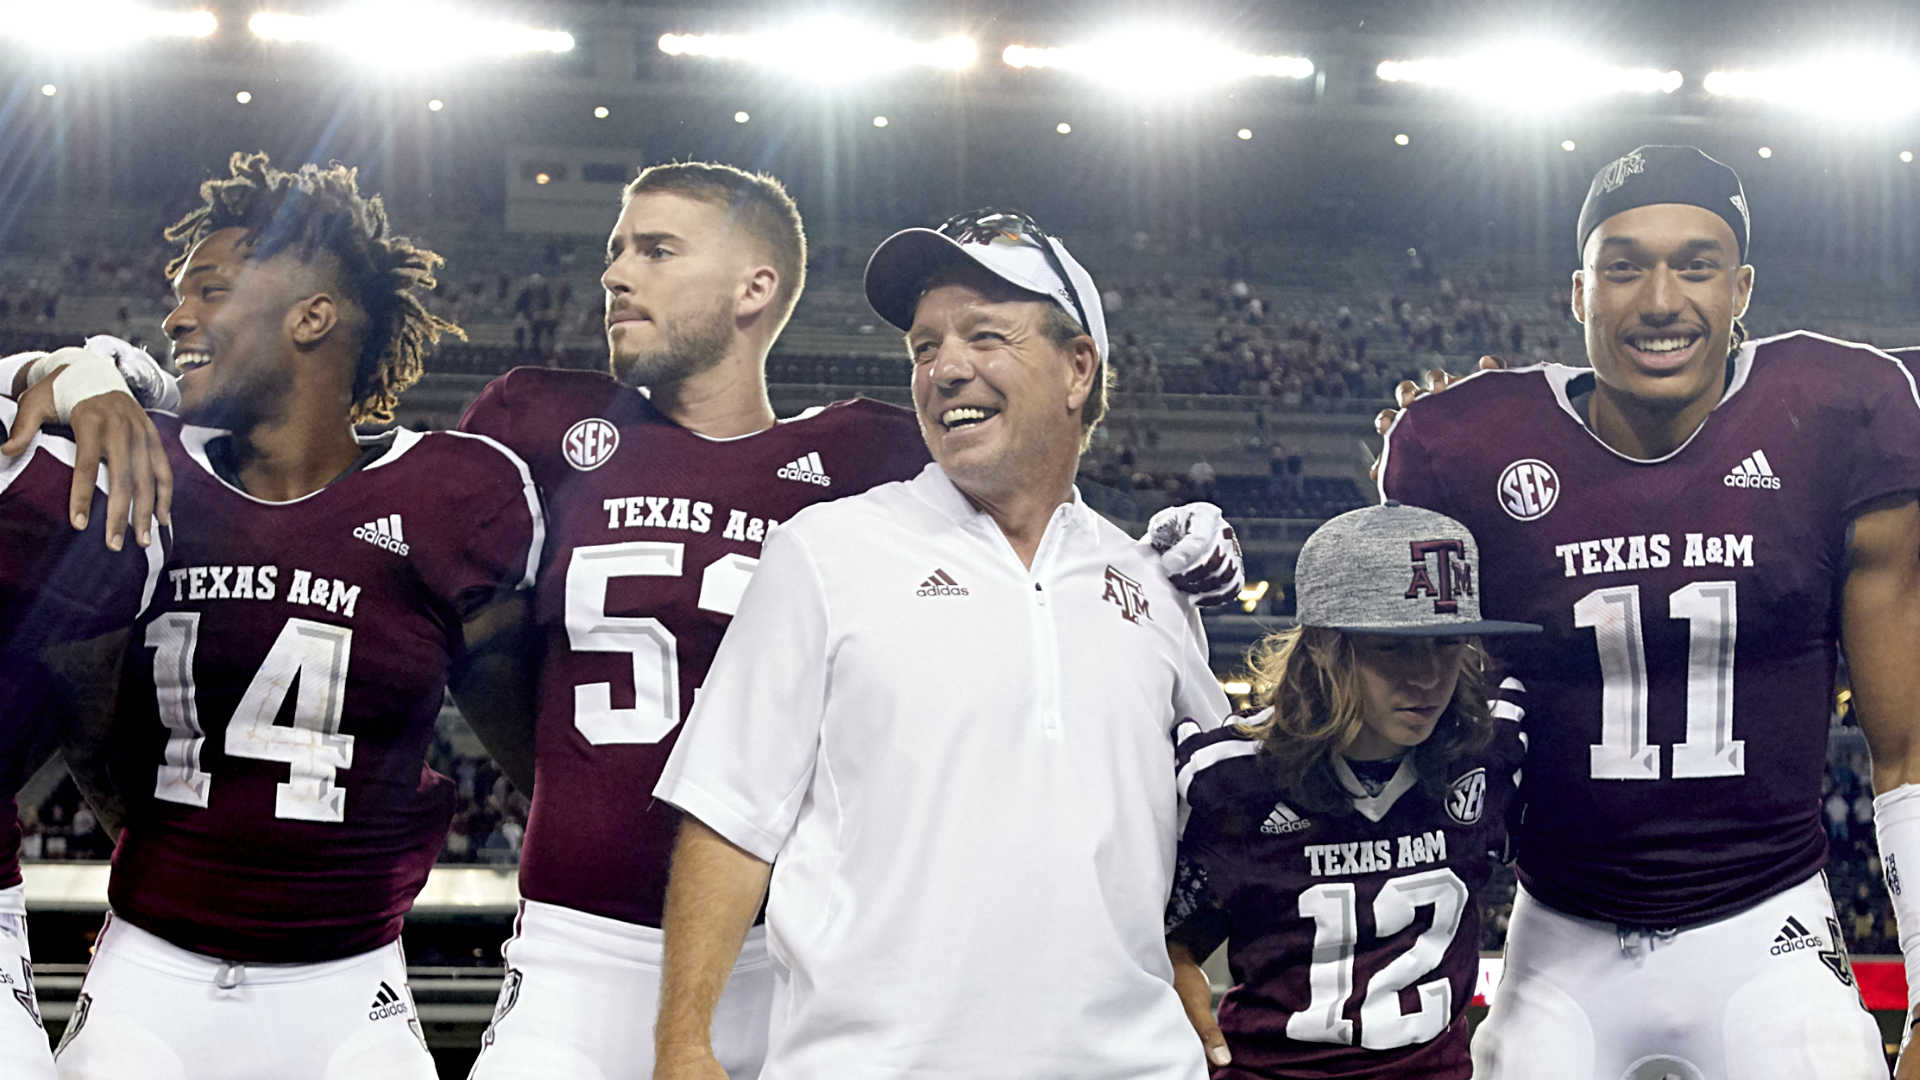 Breaking the Alabama-Clemson monopoly: Sizing up Texas A&M's chances